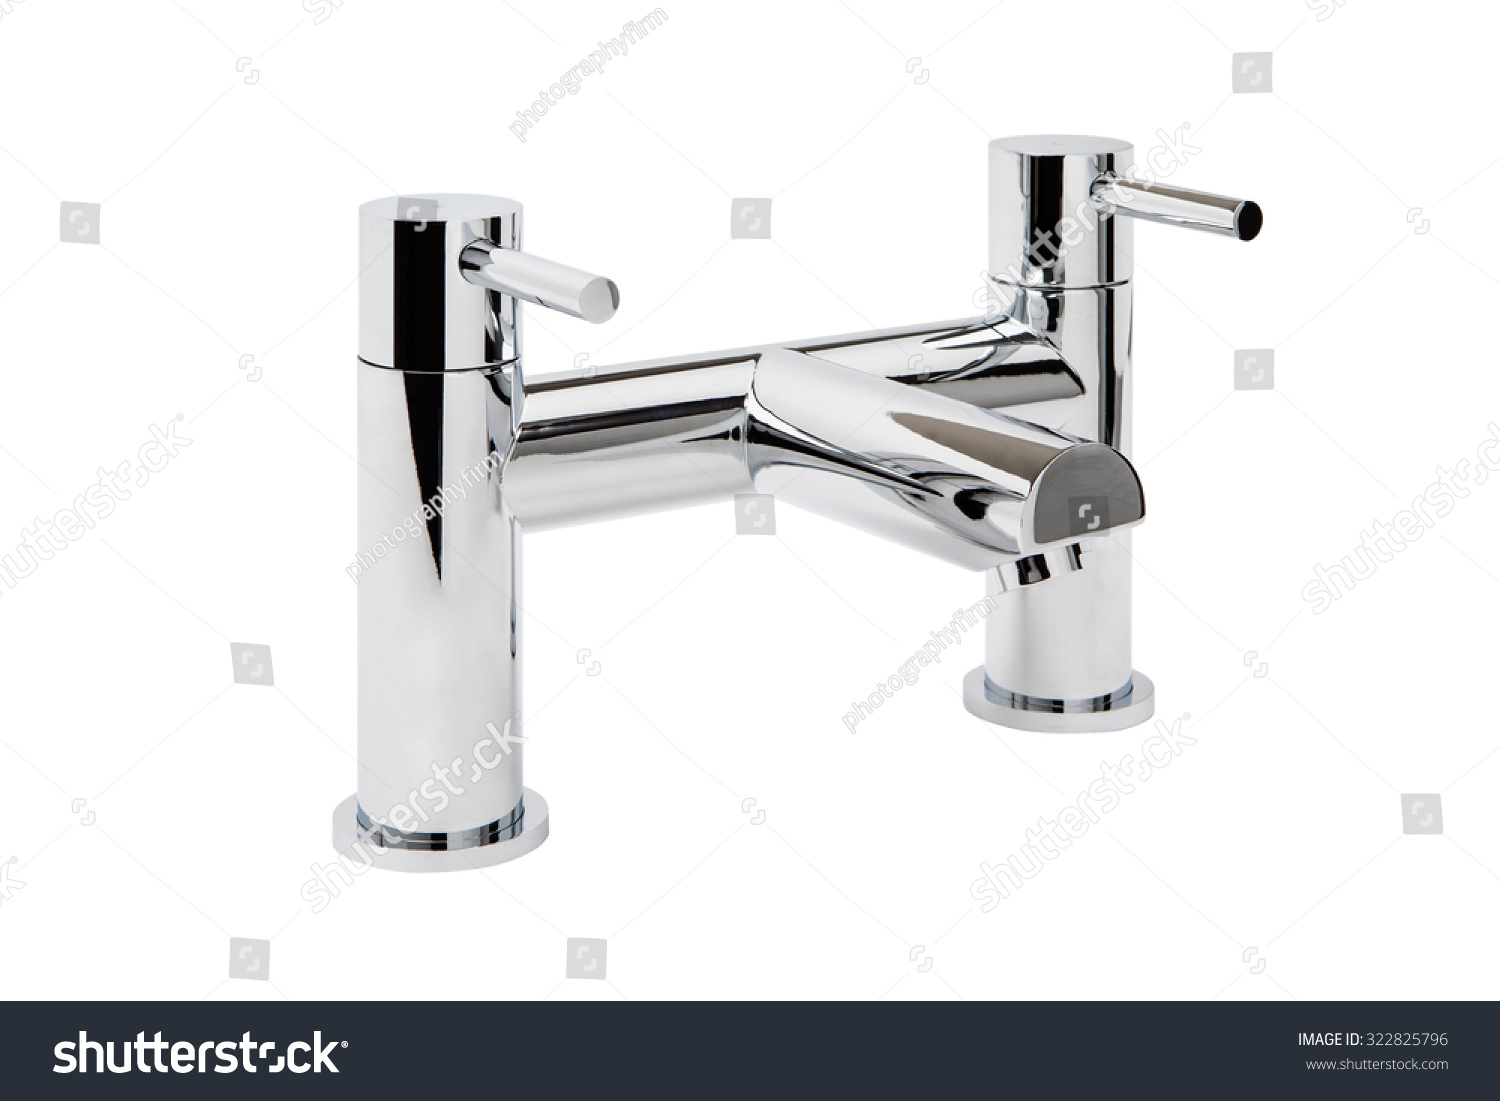 Chrome Bathroom Taps Shower Hose On Stock Photo (Royalty Free ...